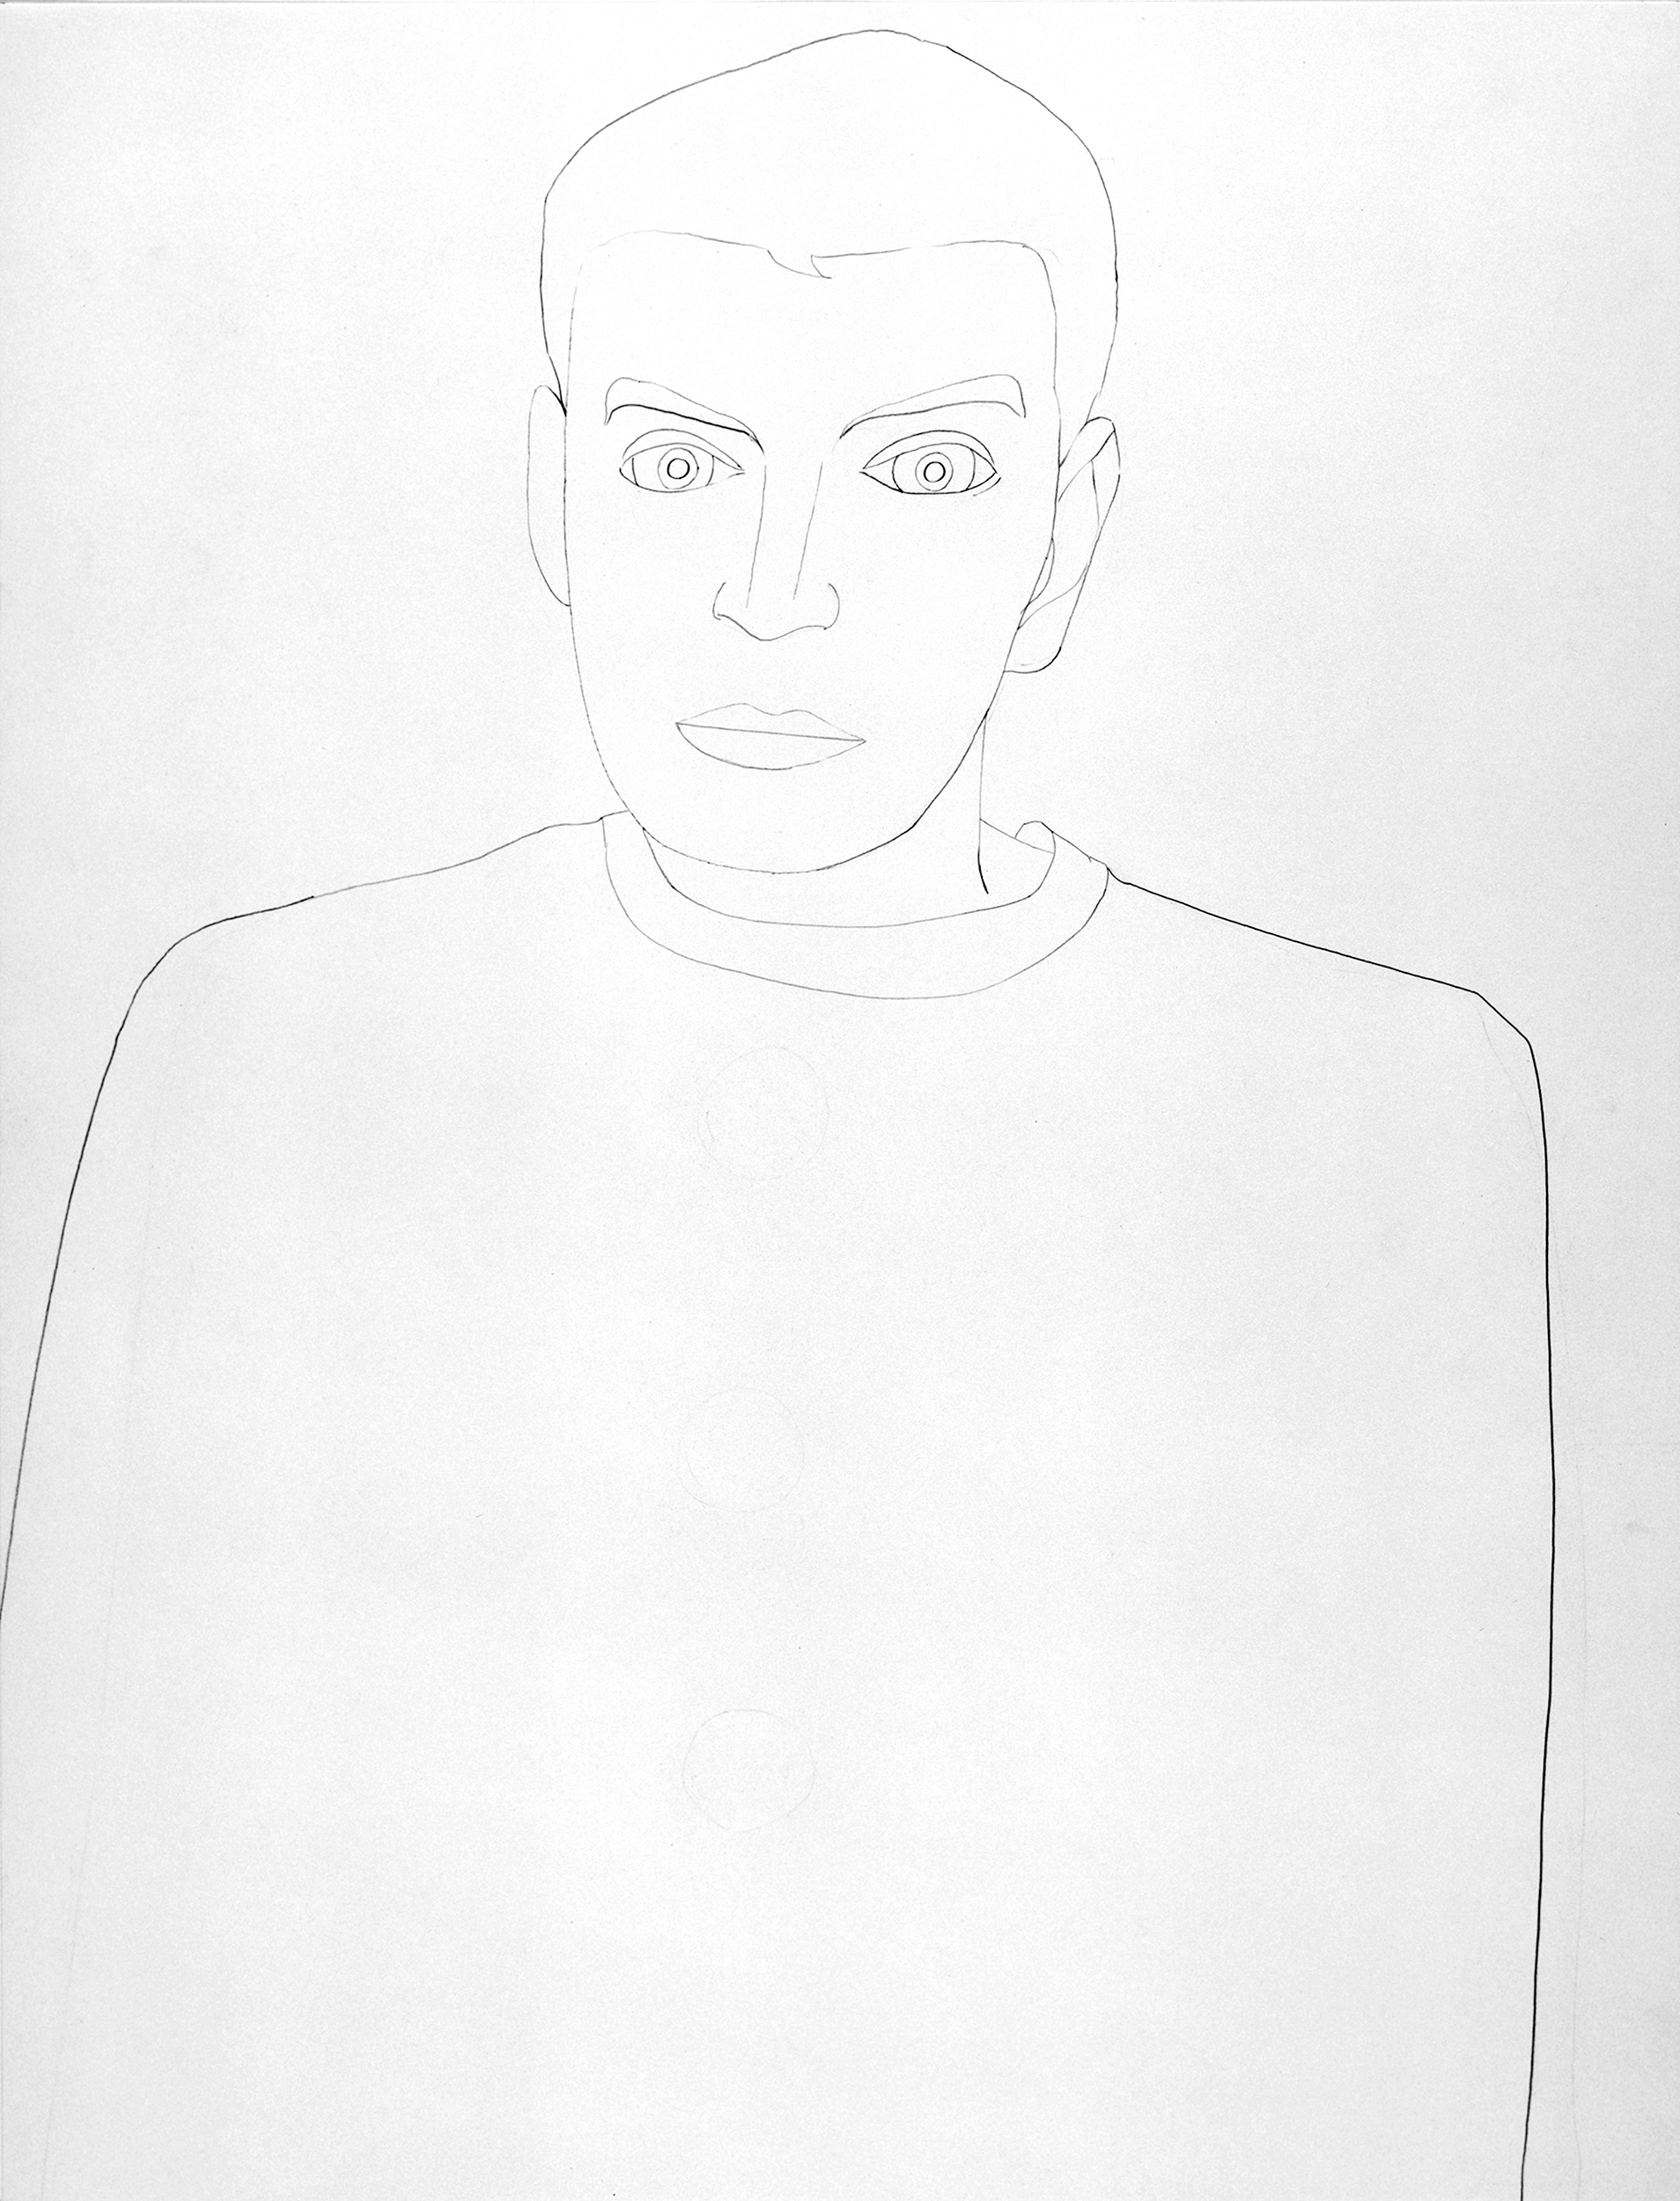 Self-portait in T-shirt, drawing by Wouter van Riessen